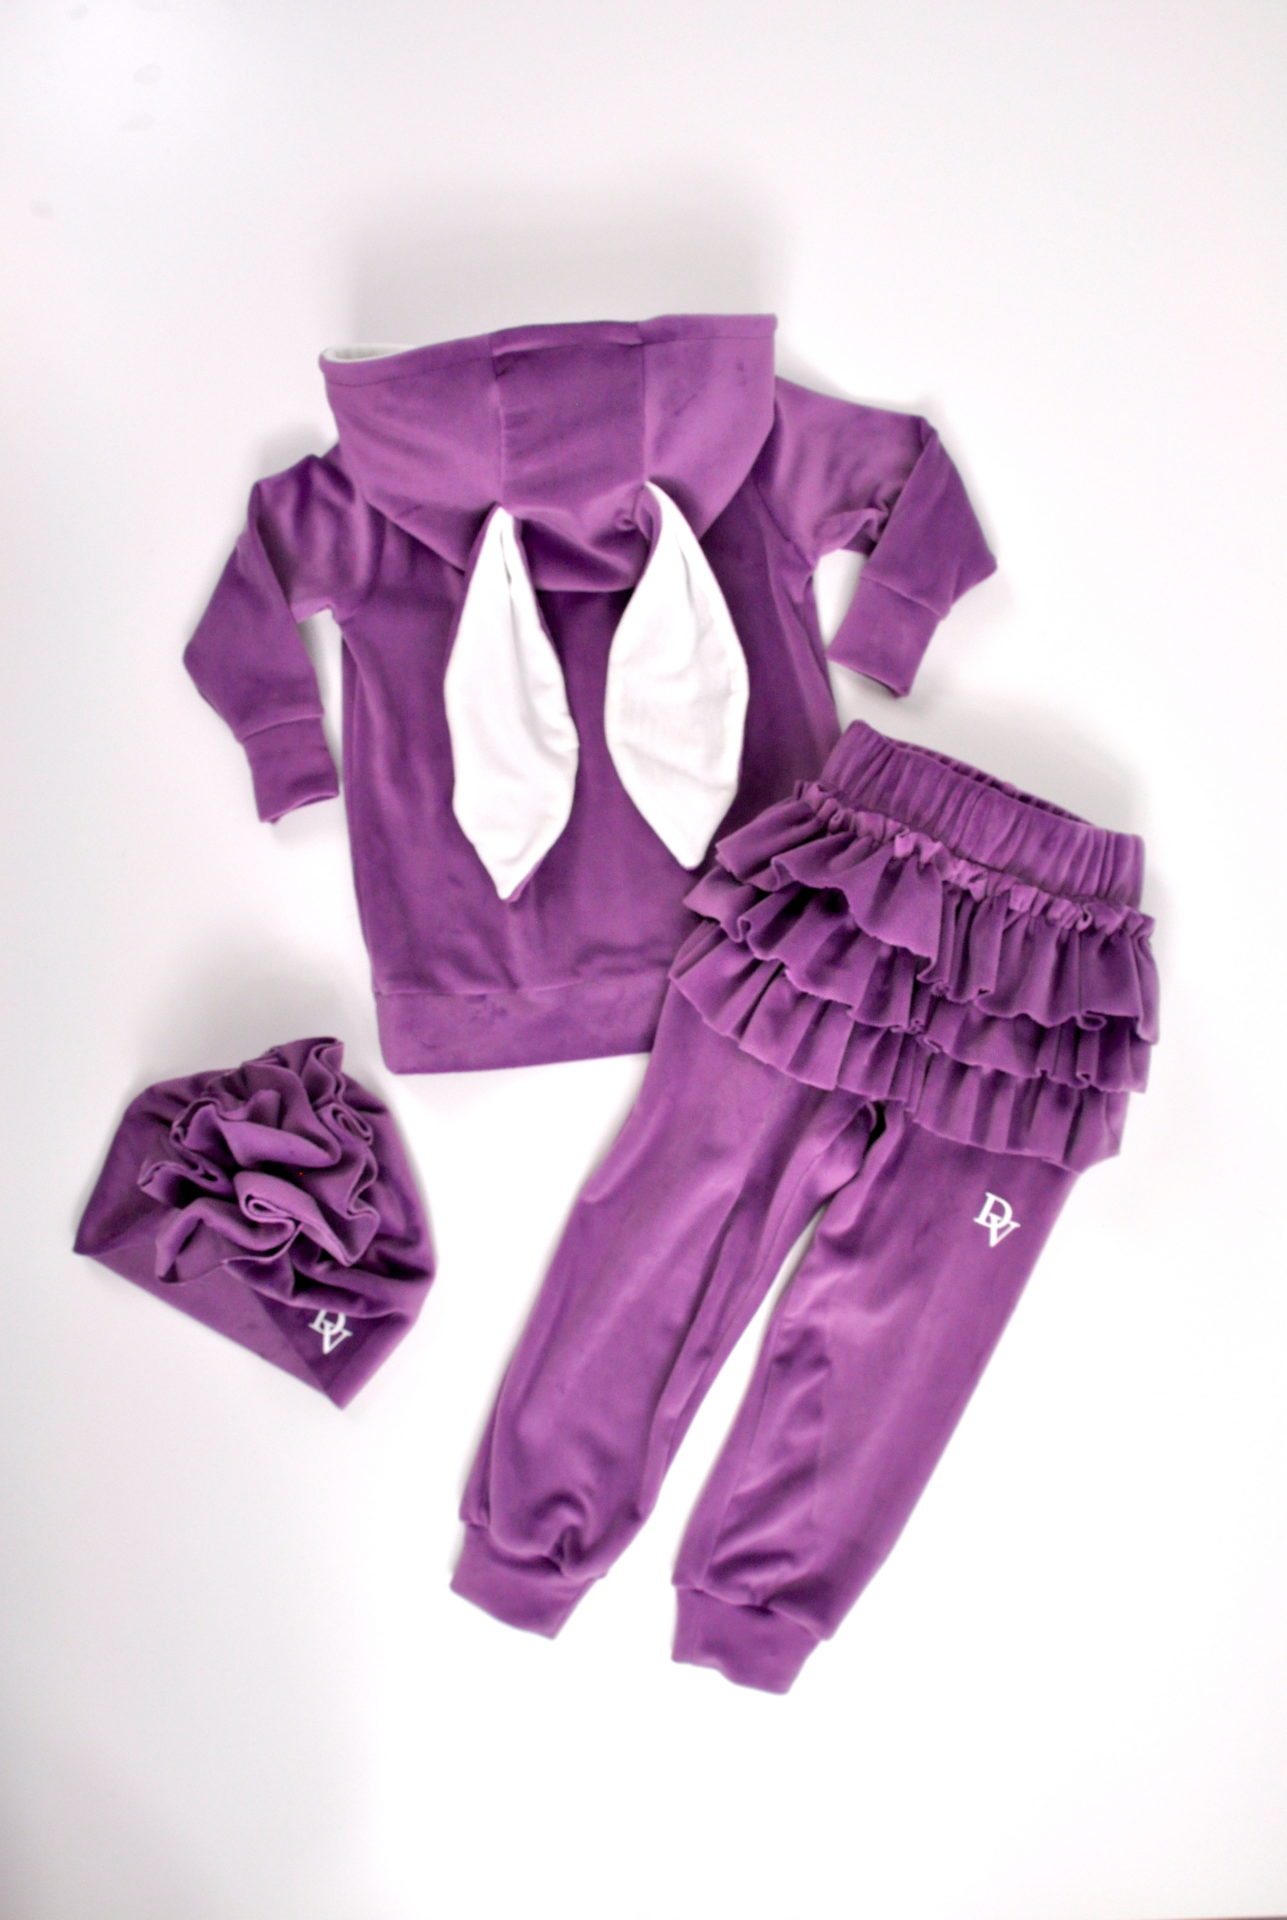 Girls' tracksuit Bunny Violet. Shorts with ruffles. Turban